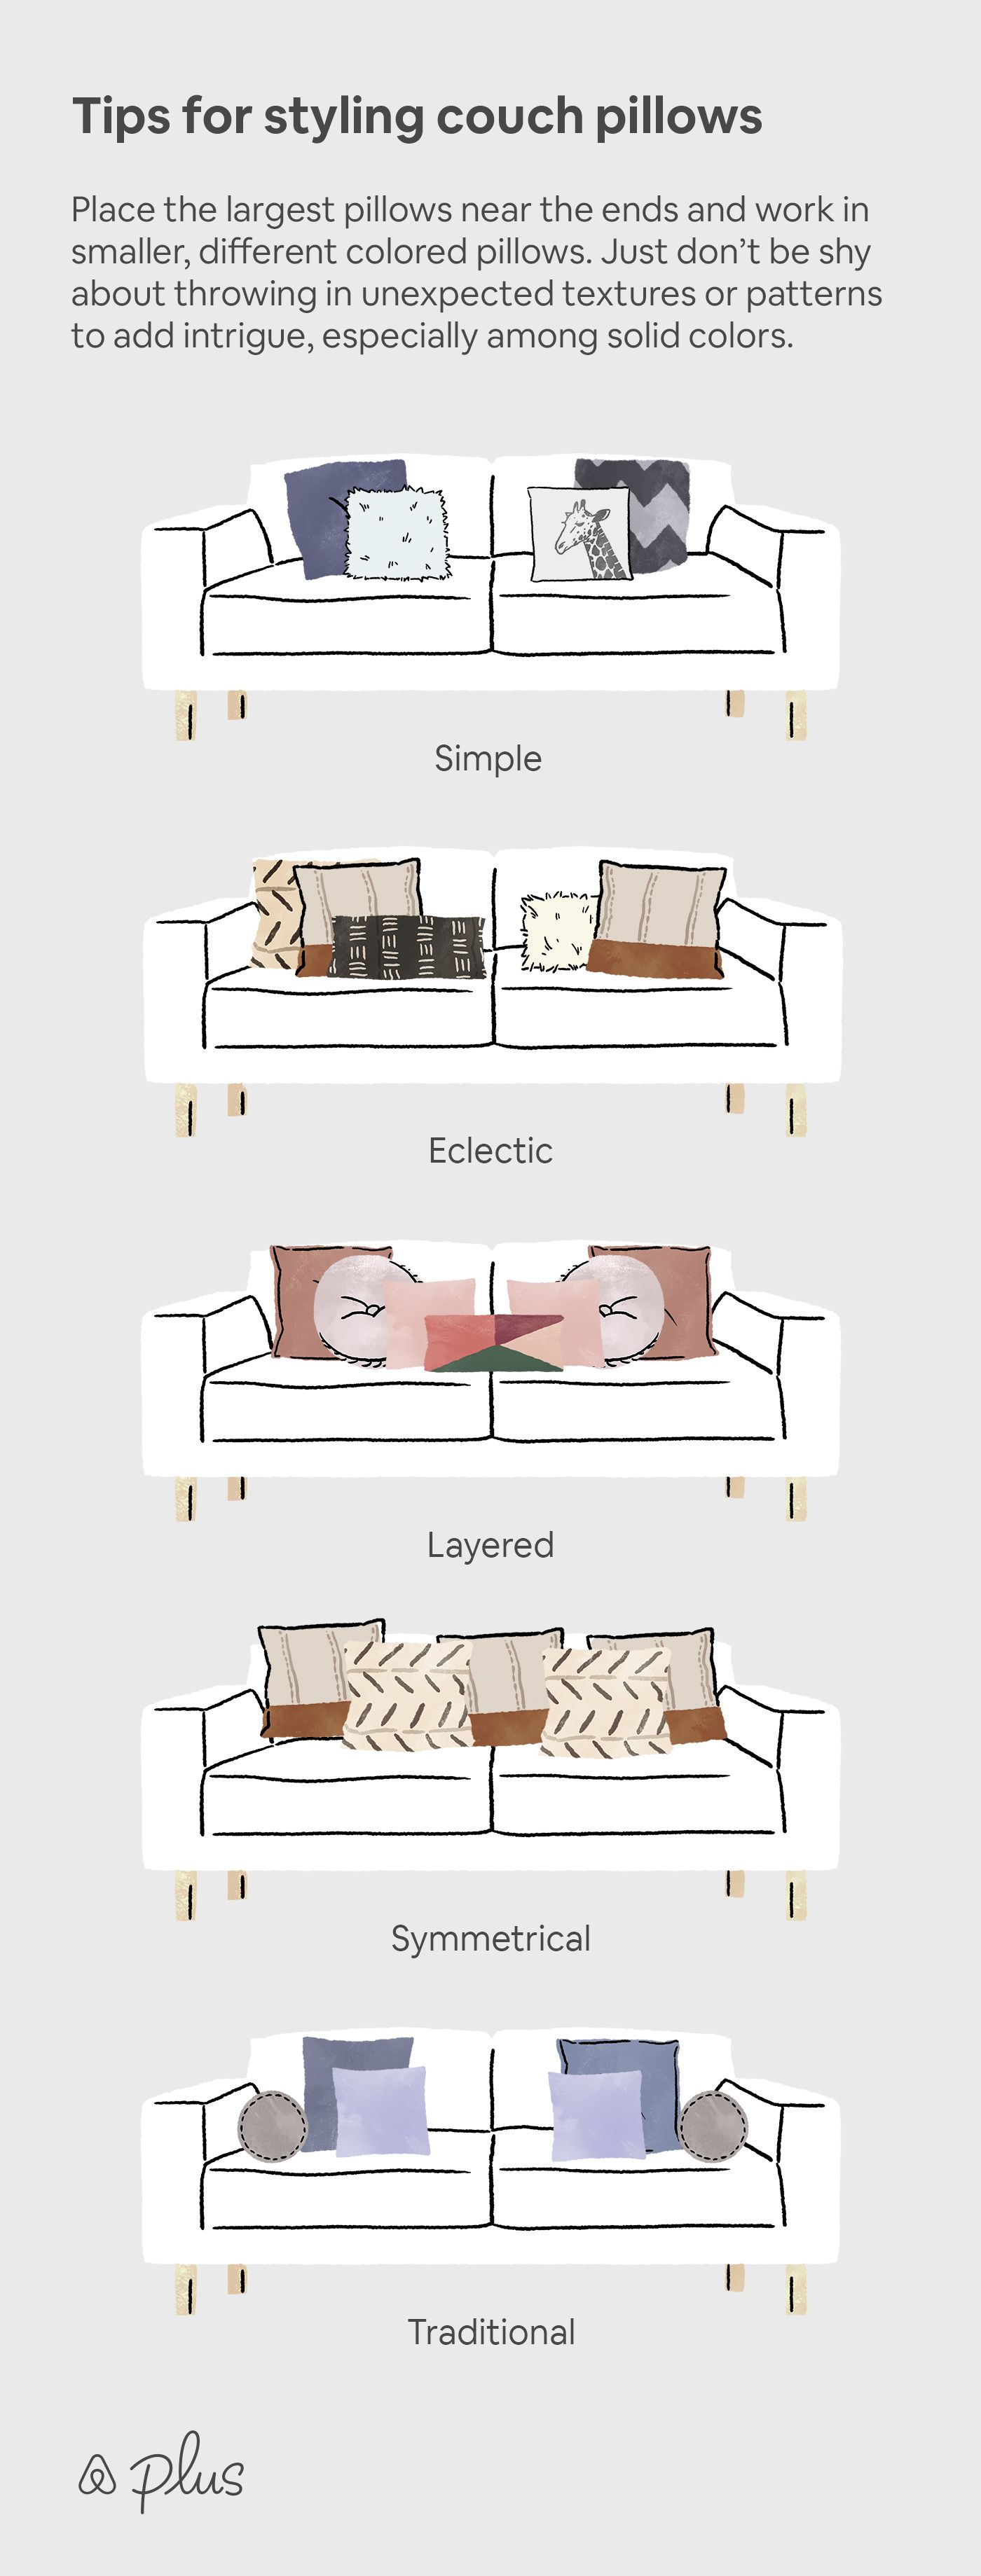 Tips for styling couch pillows images